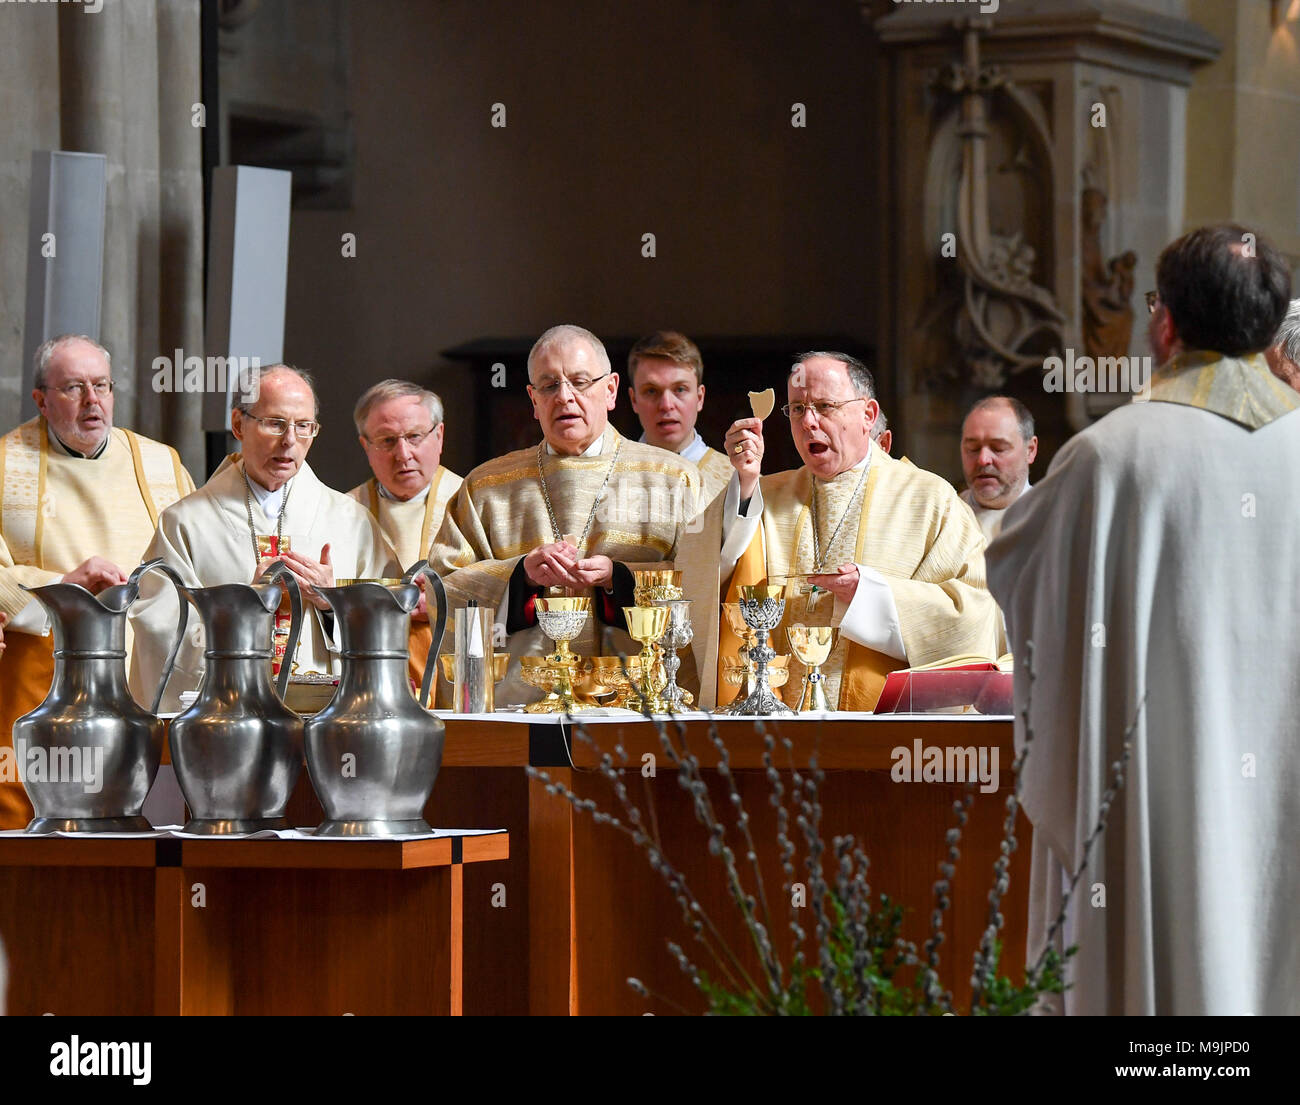 27 March 2018, Germany, Erfurt: An oil consecration mass taking place at the Erfurt Cathedral with suffragan bishop Reinhard Hauke (4-L) and bishop Ulrich Neymeyr (6-L). The bishop celebrates mass with priests of his diocese. The anointment with oil is intended to express an abundance of blessings, power and healing. Photo: Jens Kalaene/dpa - Stock Image